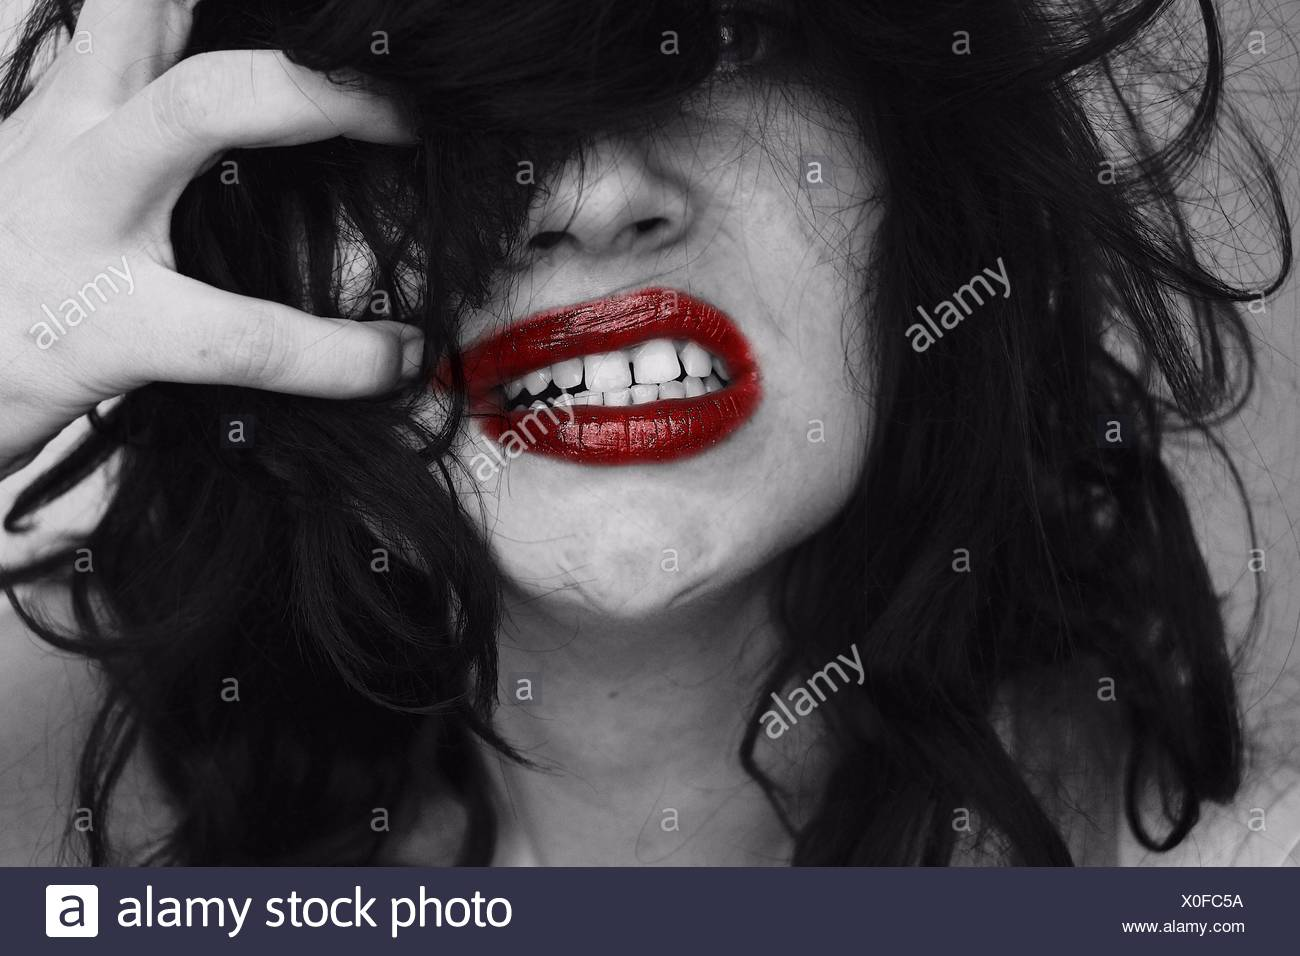 Close-Up Angry Woman with Hand in Hair Photo Stock